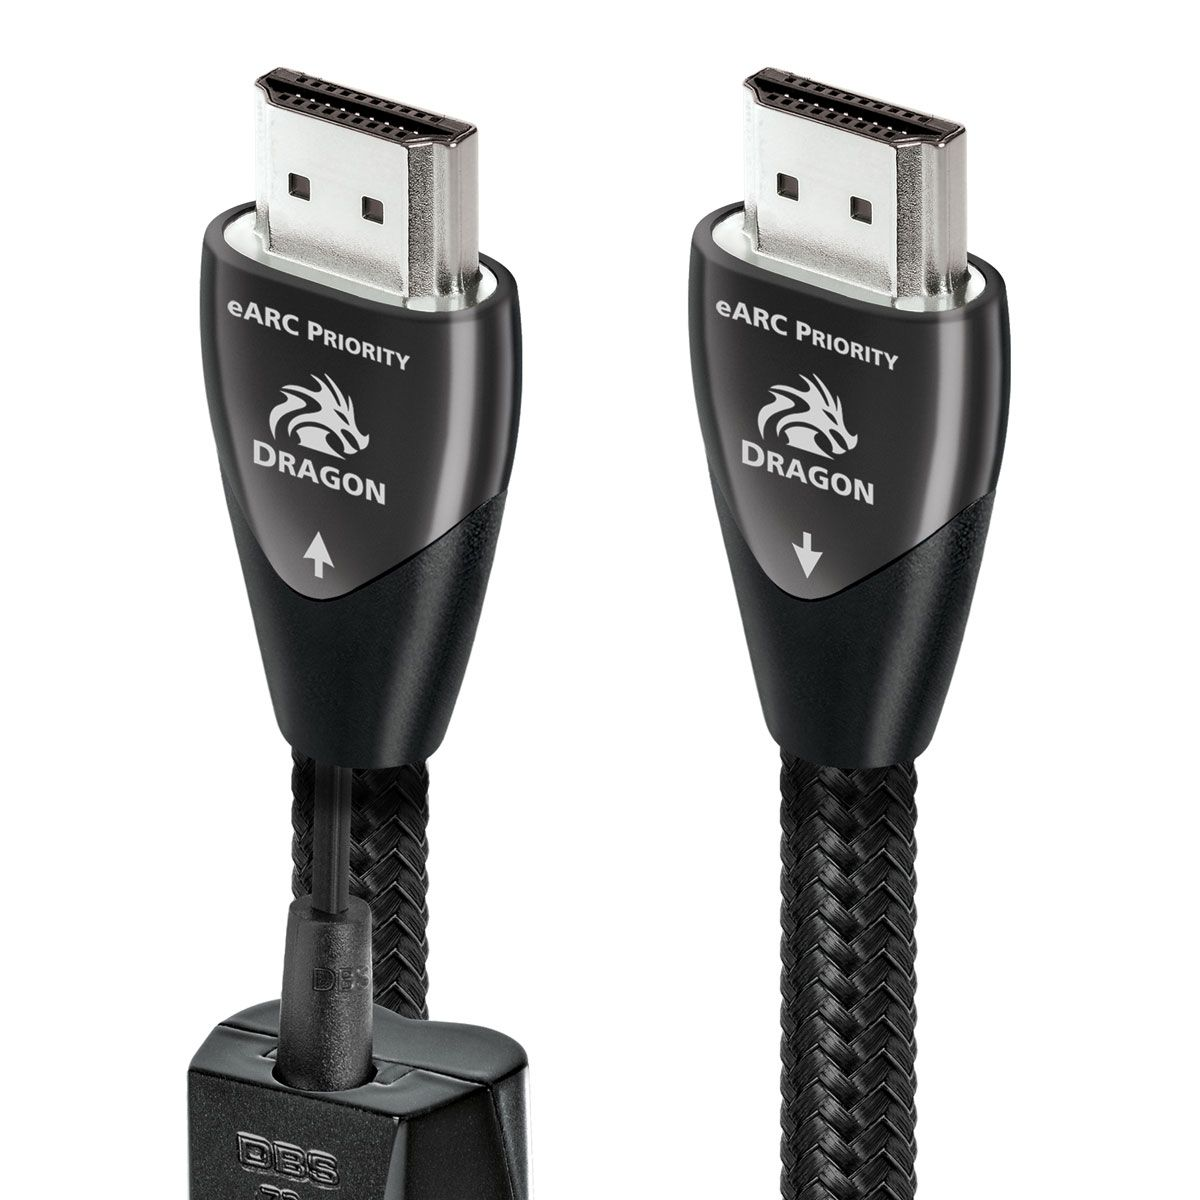 Audioquest Dragon eARC Priority HDMI Cable (w/ 72v DBS System)